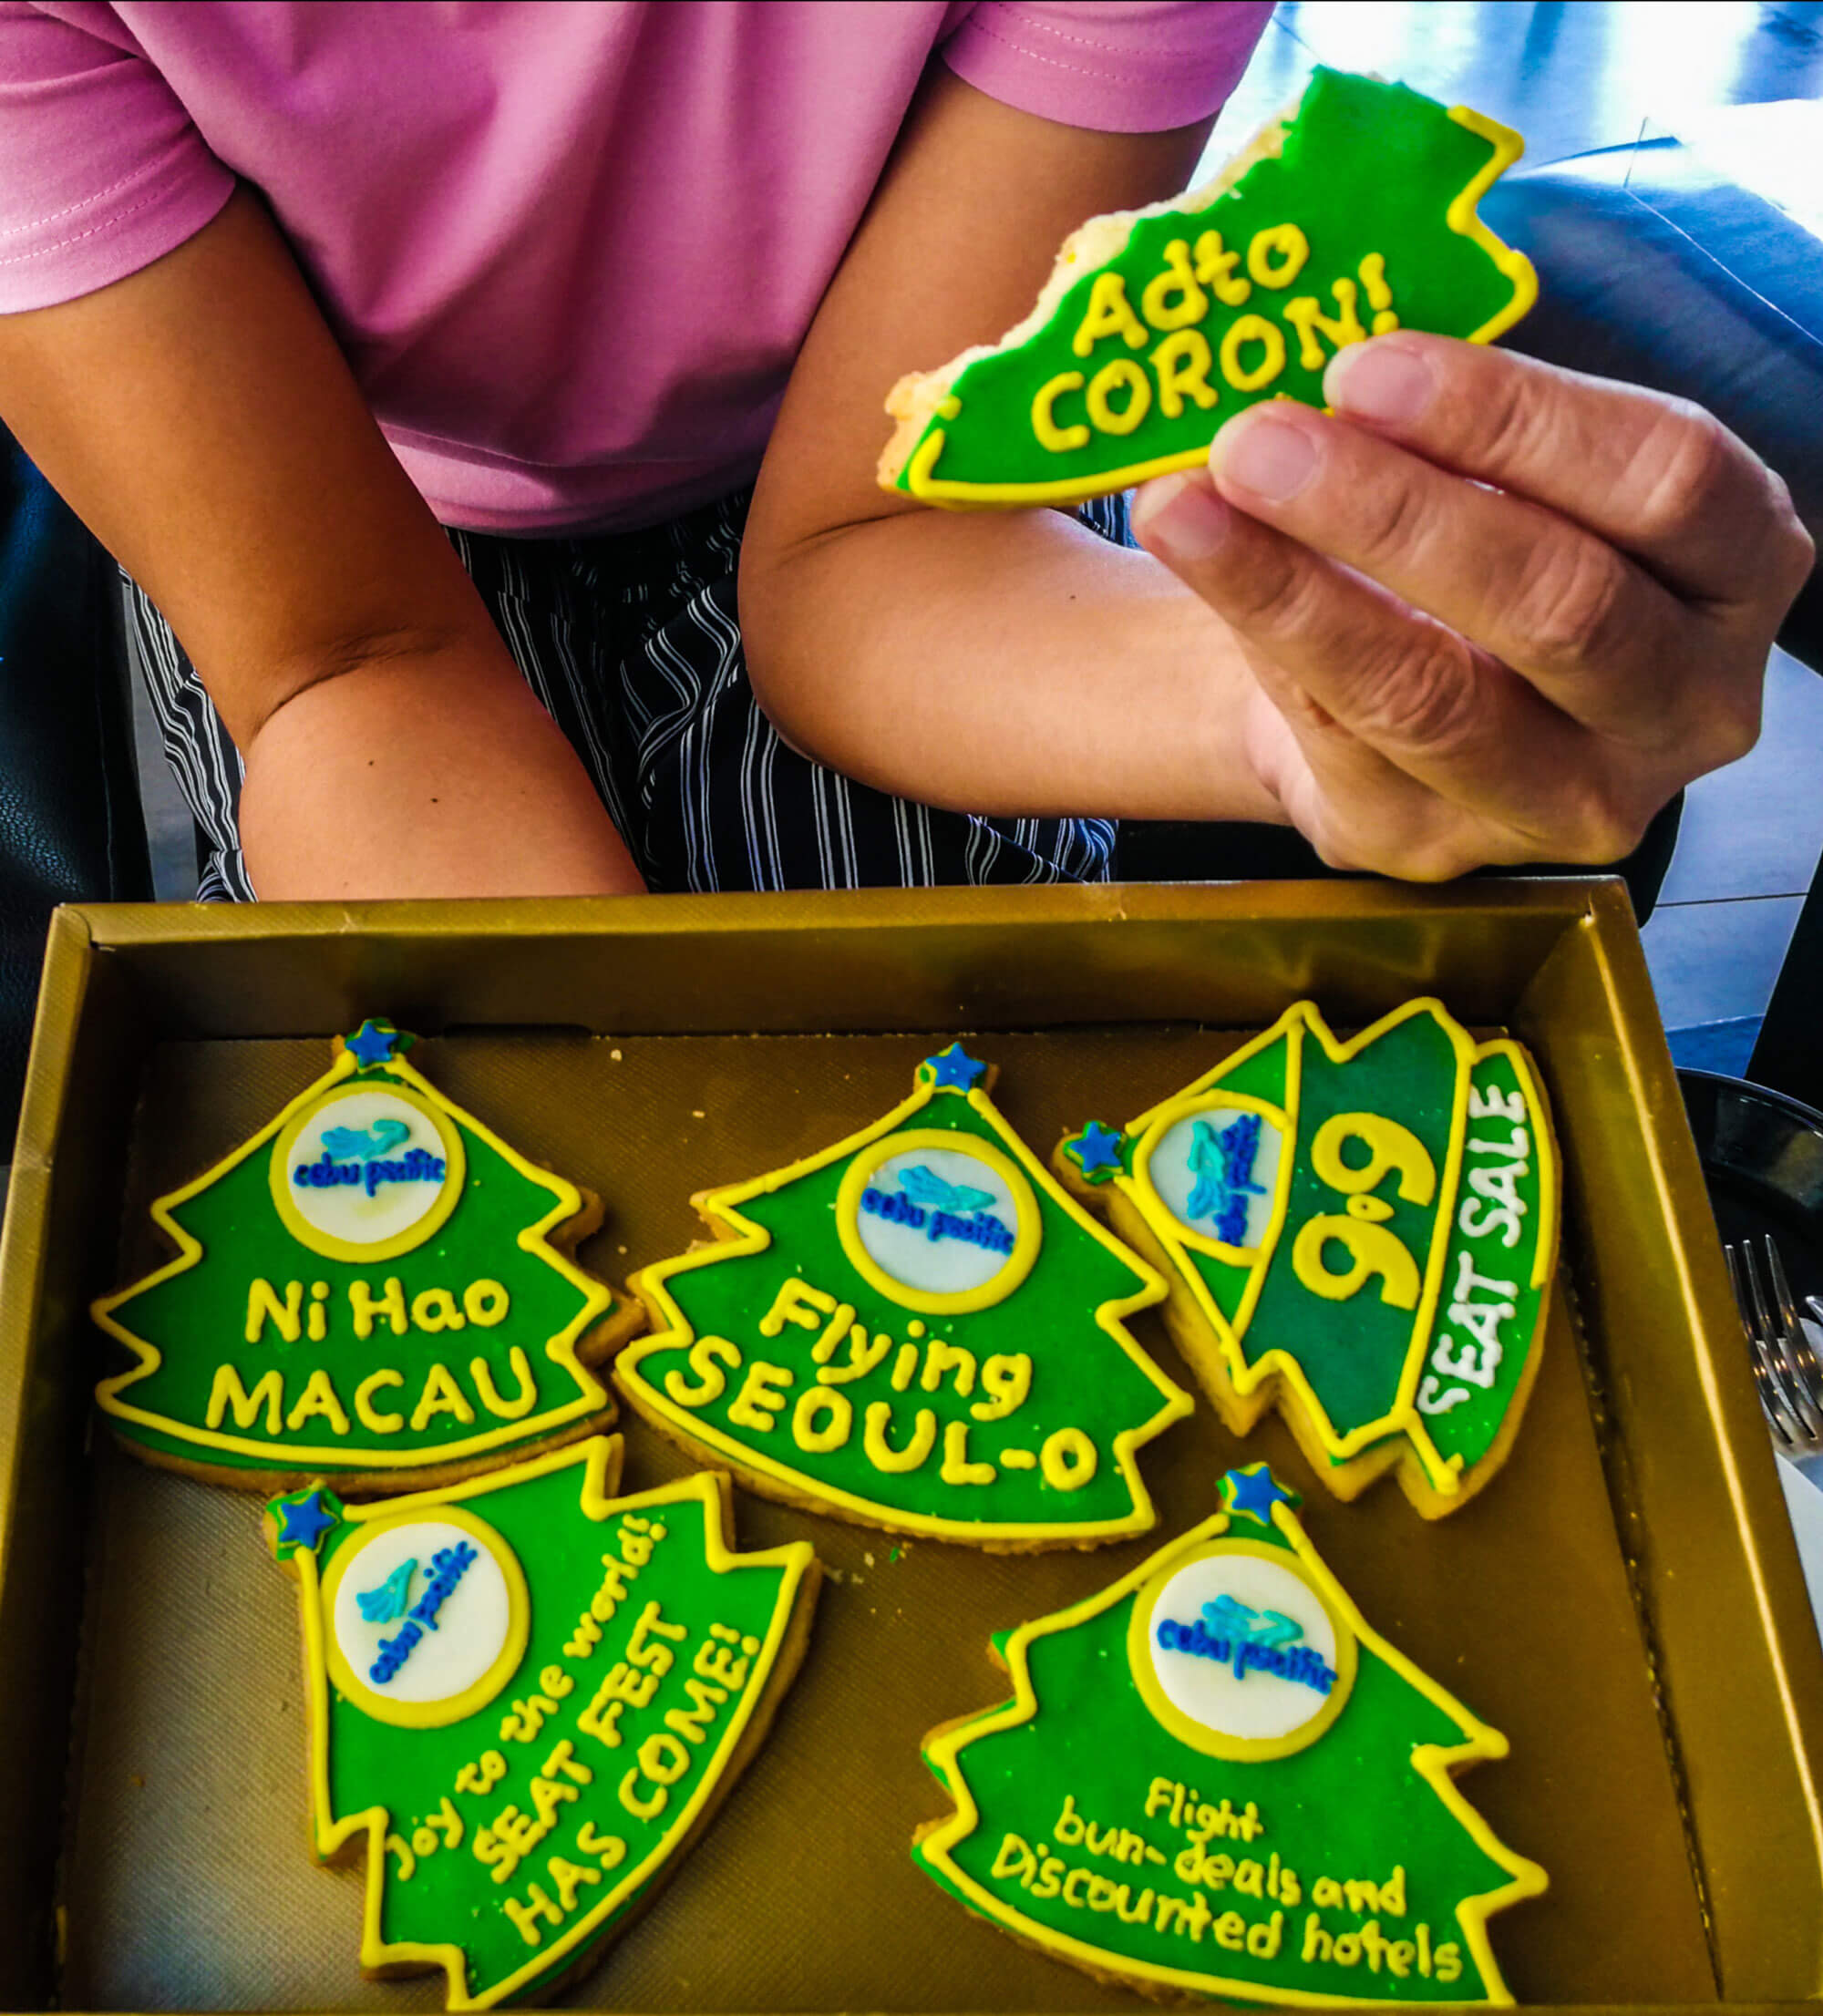 #CEBPACSuperSeatFest. Cebu Pacific greets the start of the Philippine Christmas season with a seat sale to kick off the first of the 'BER' months.